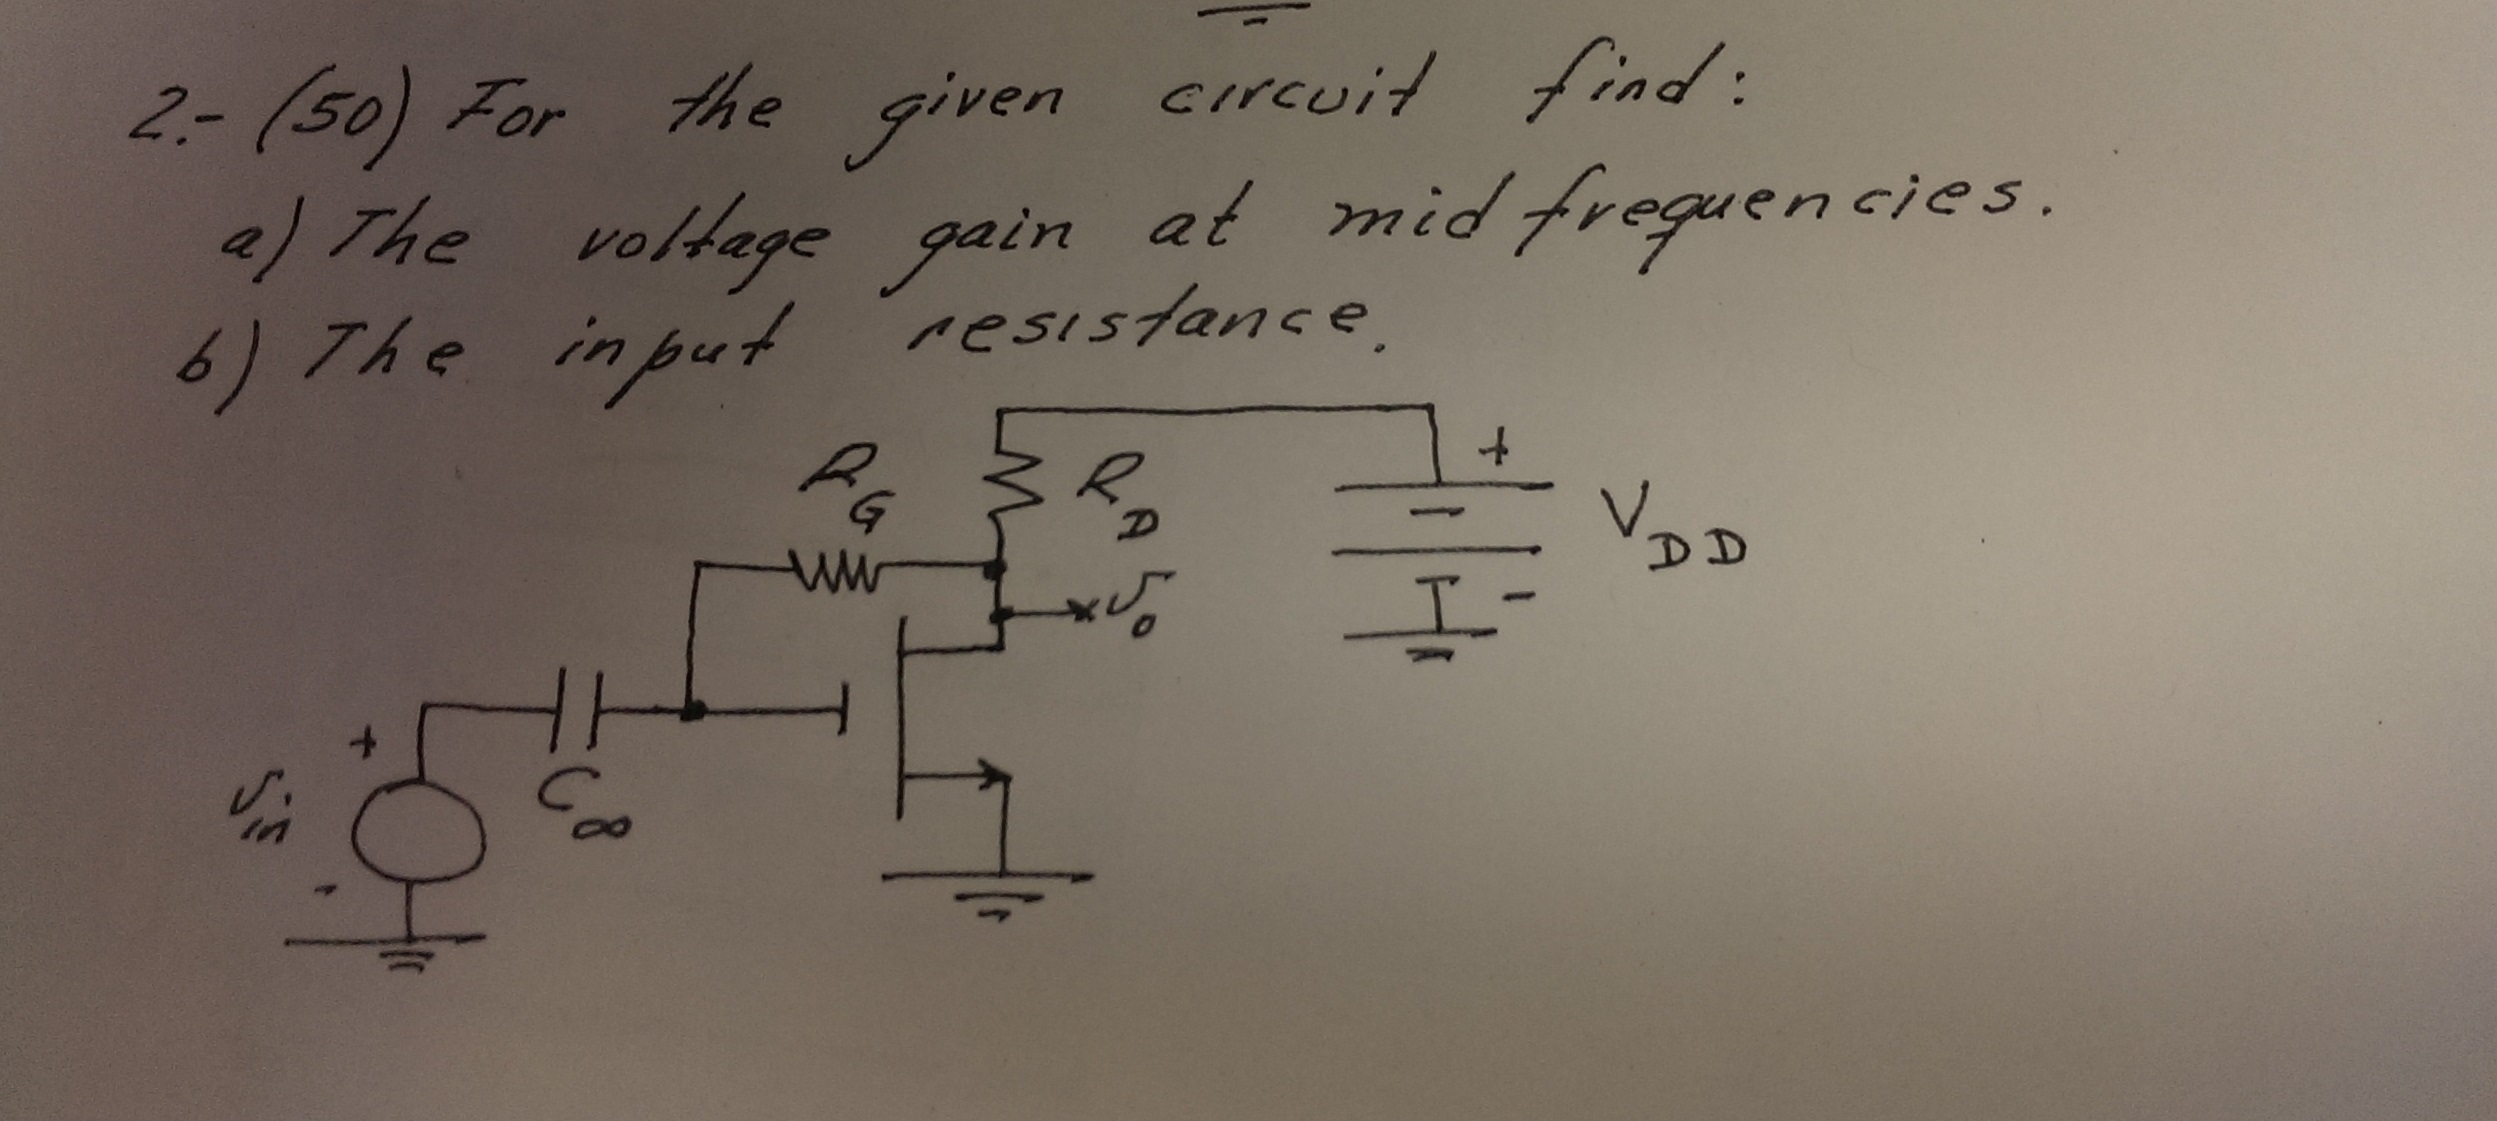 For the given circuit find: The voltage gain at mi